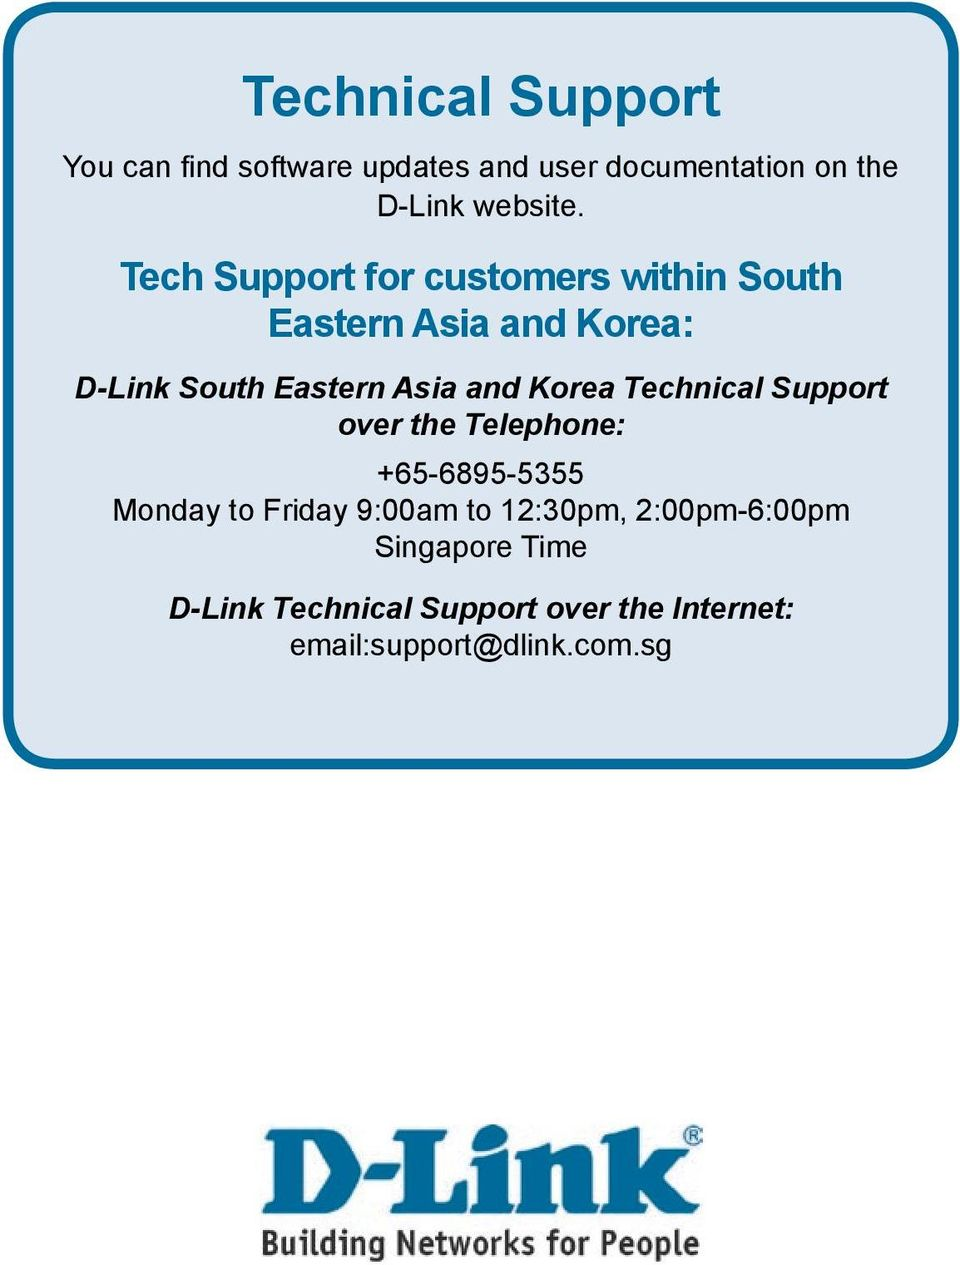 Tech Support for customers within South Eastern Asia and Korea: D-Link South Eastern